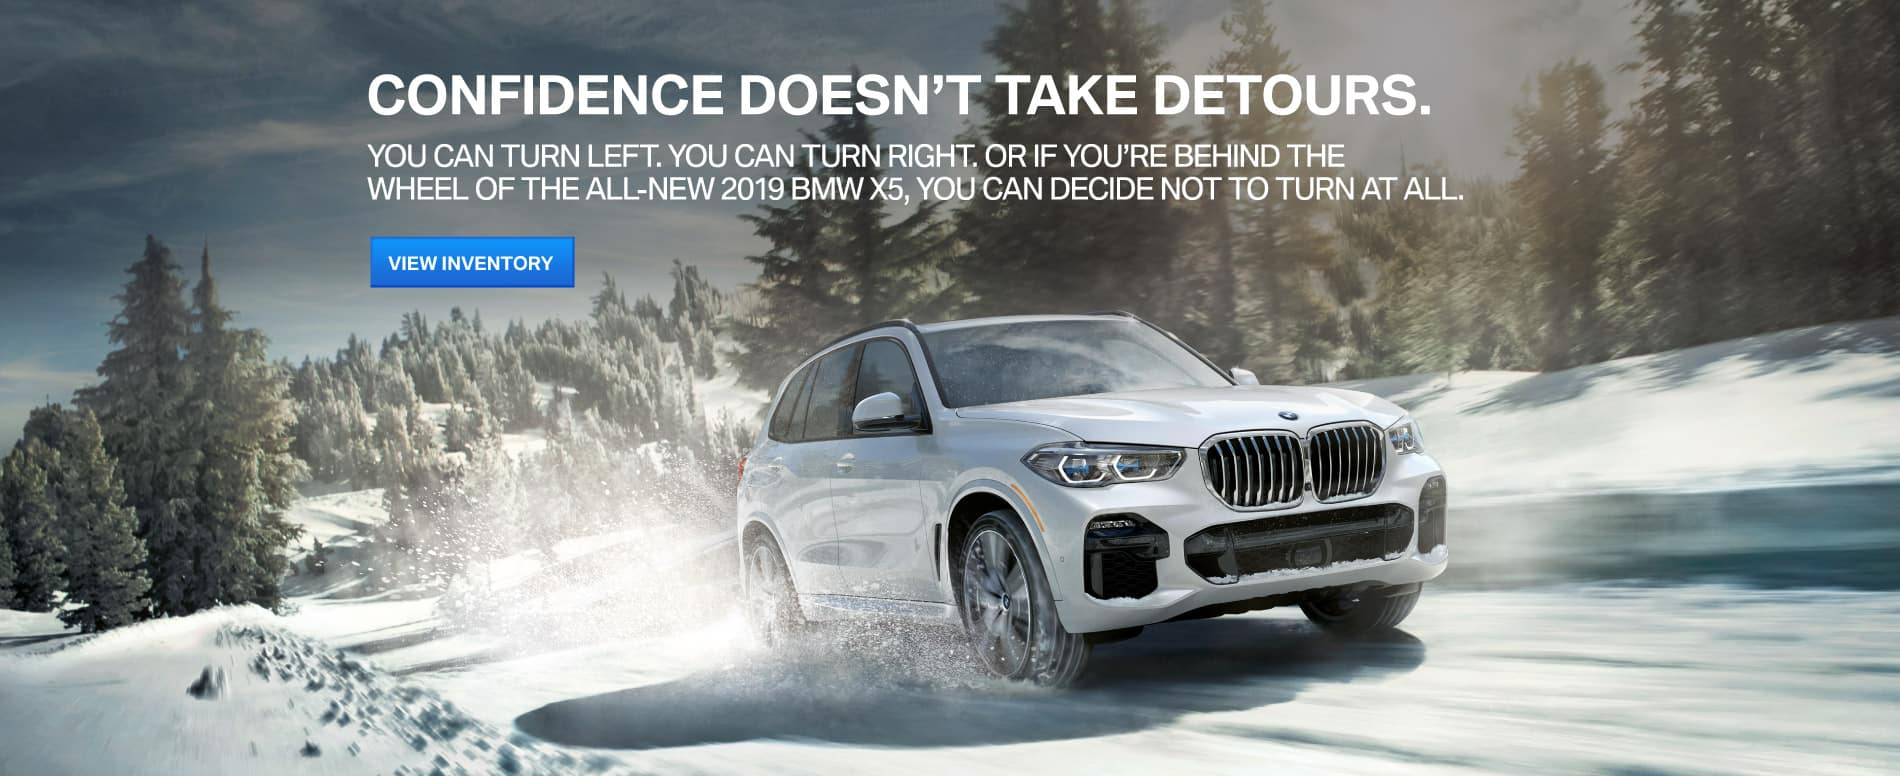 The All New 2019 BMW X5 has Arrived at Autobahn BMW!